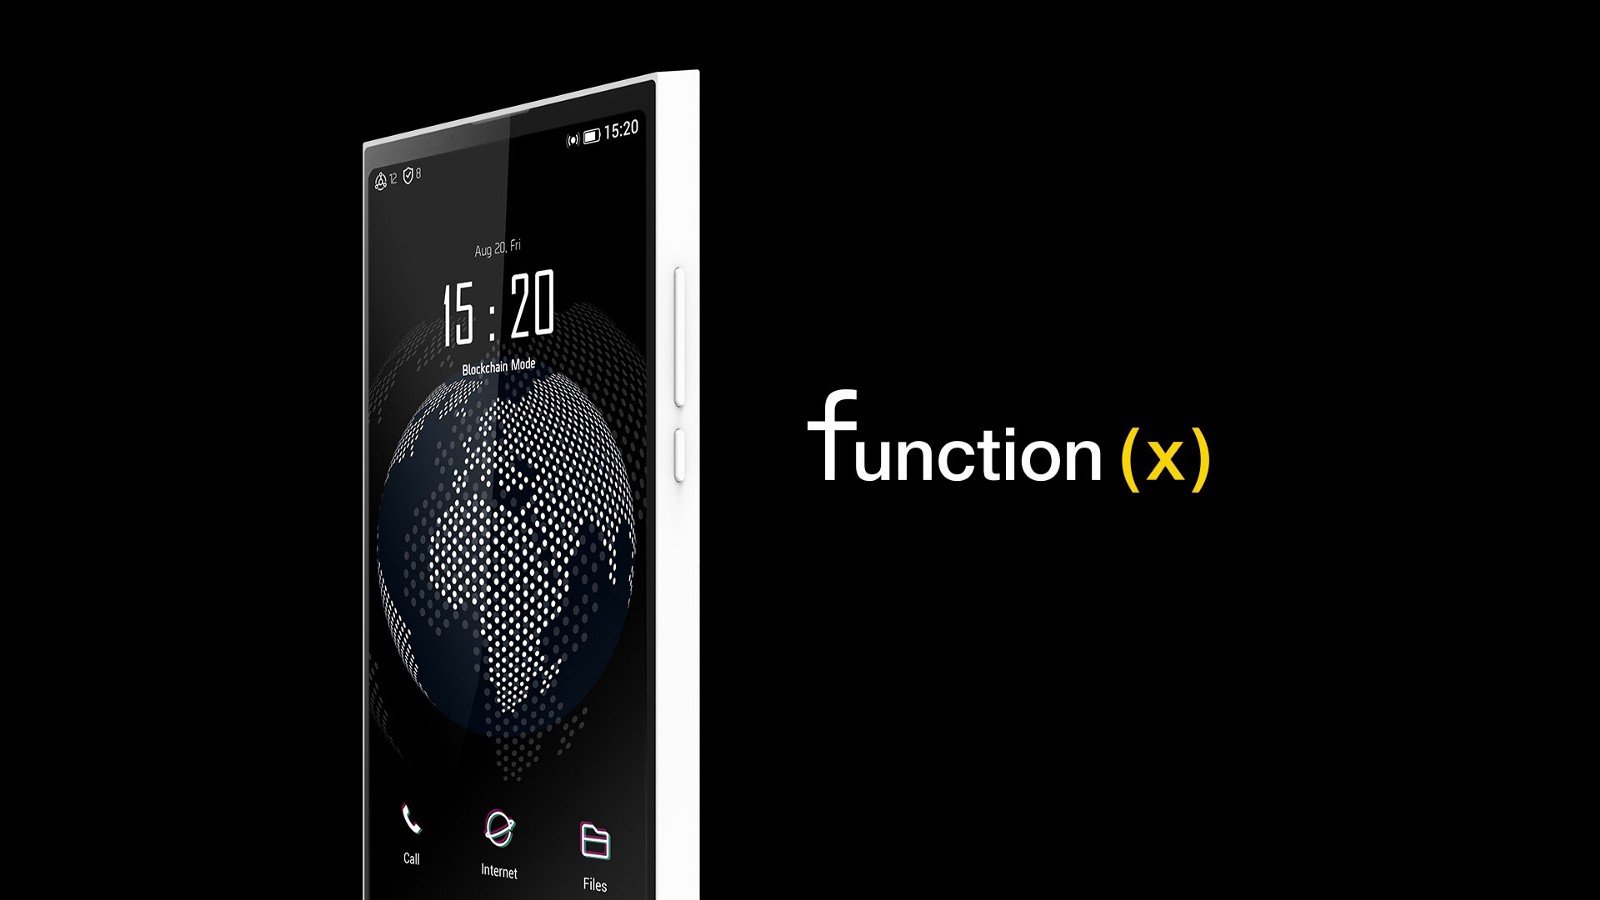 Function X - f(x) blockchain by Pundi X team